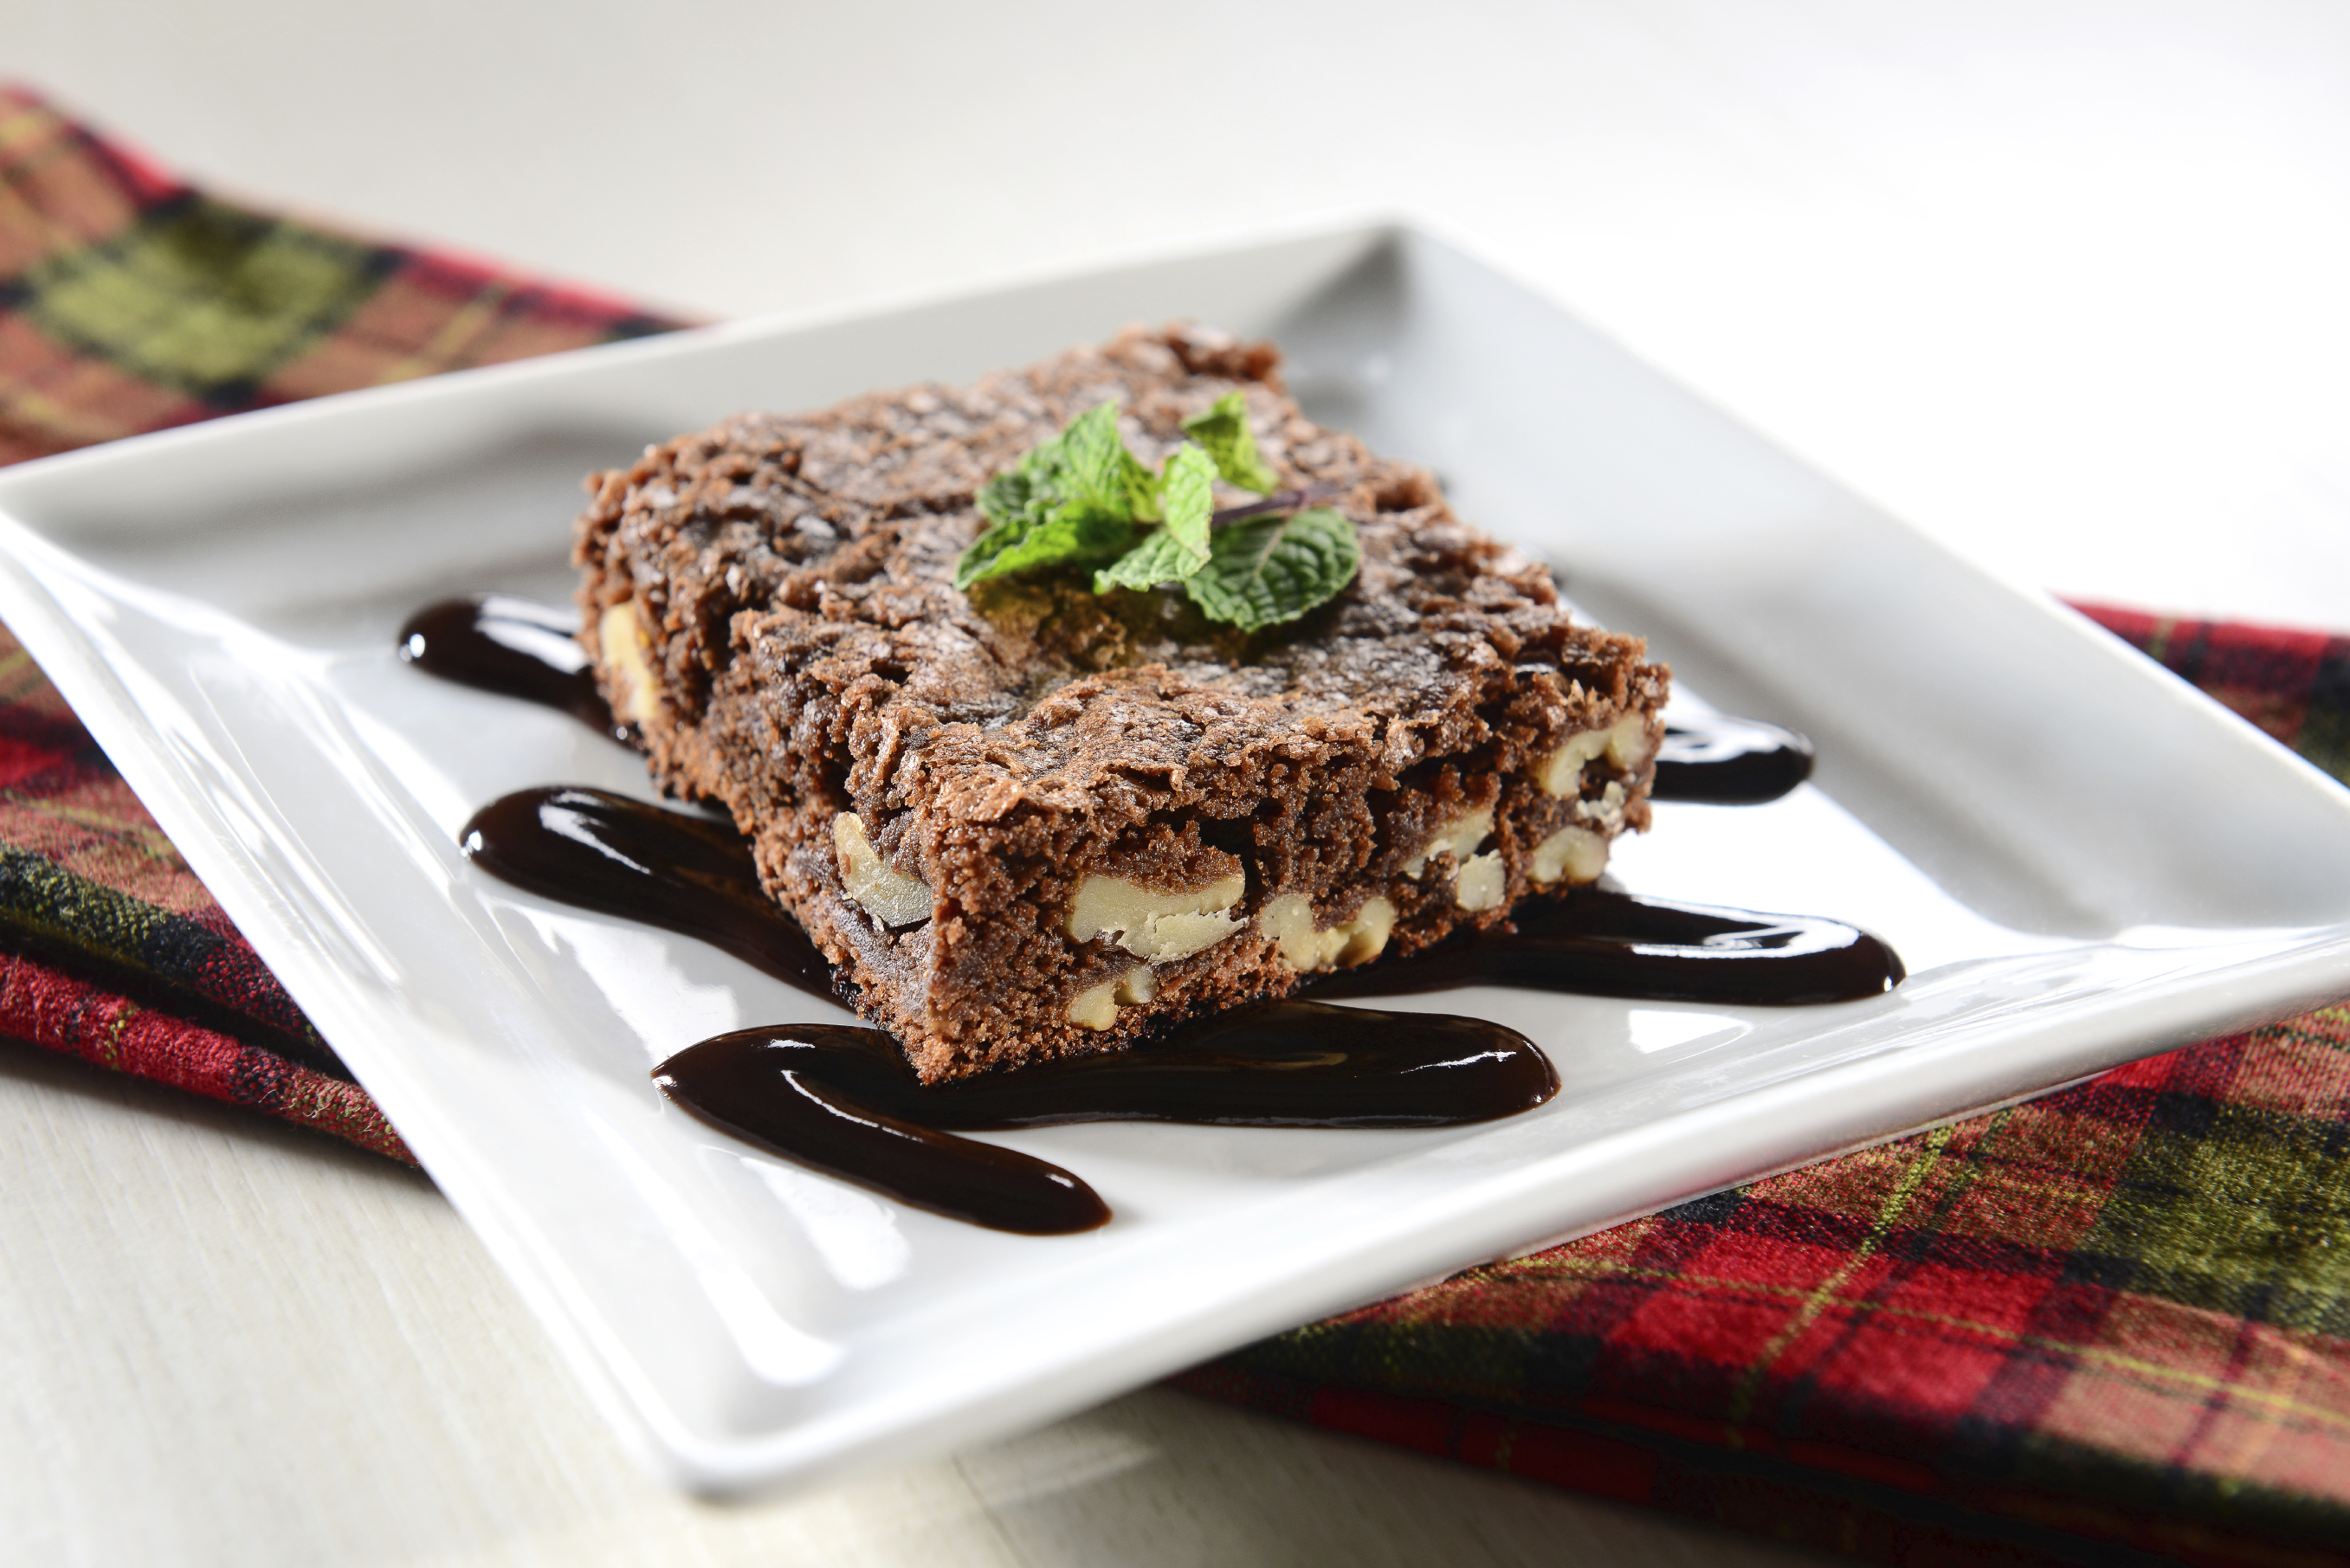 Brownie con nueces y chocolate blanco